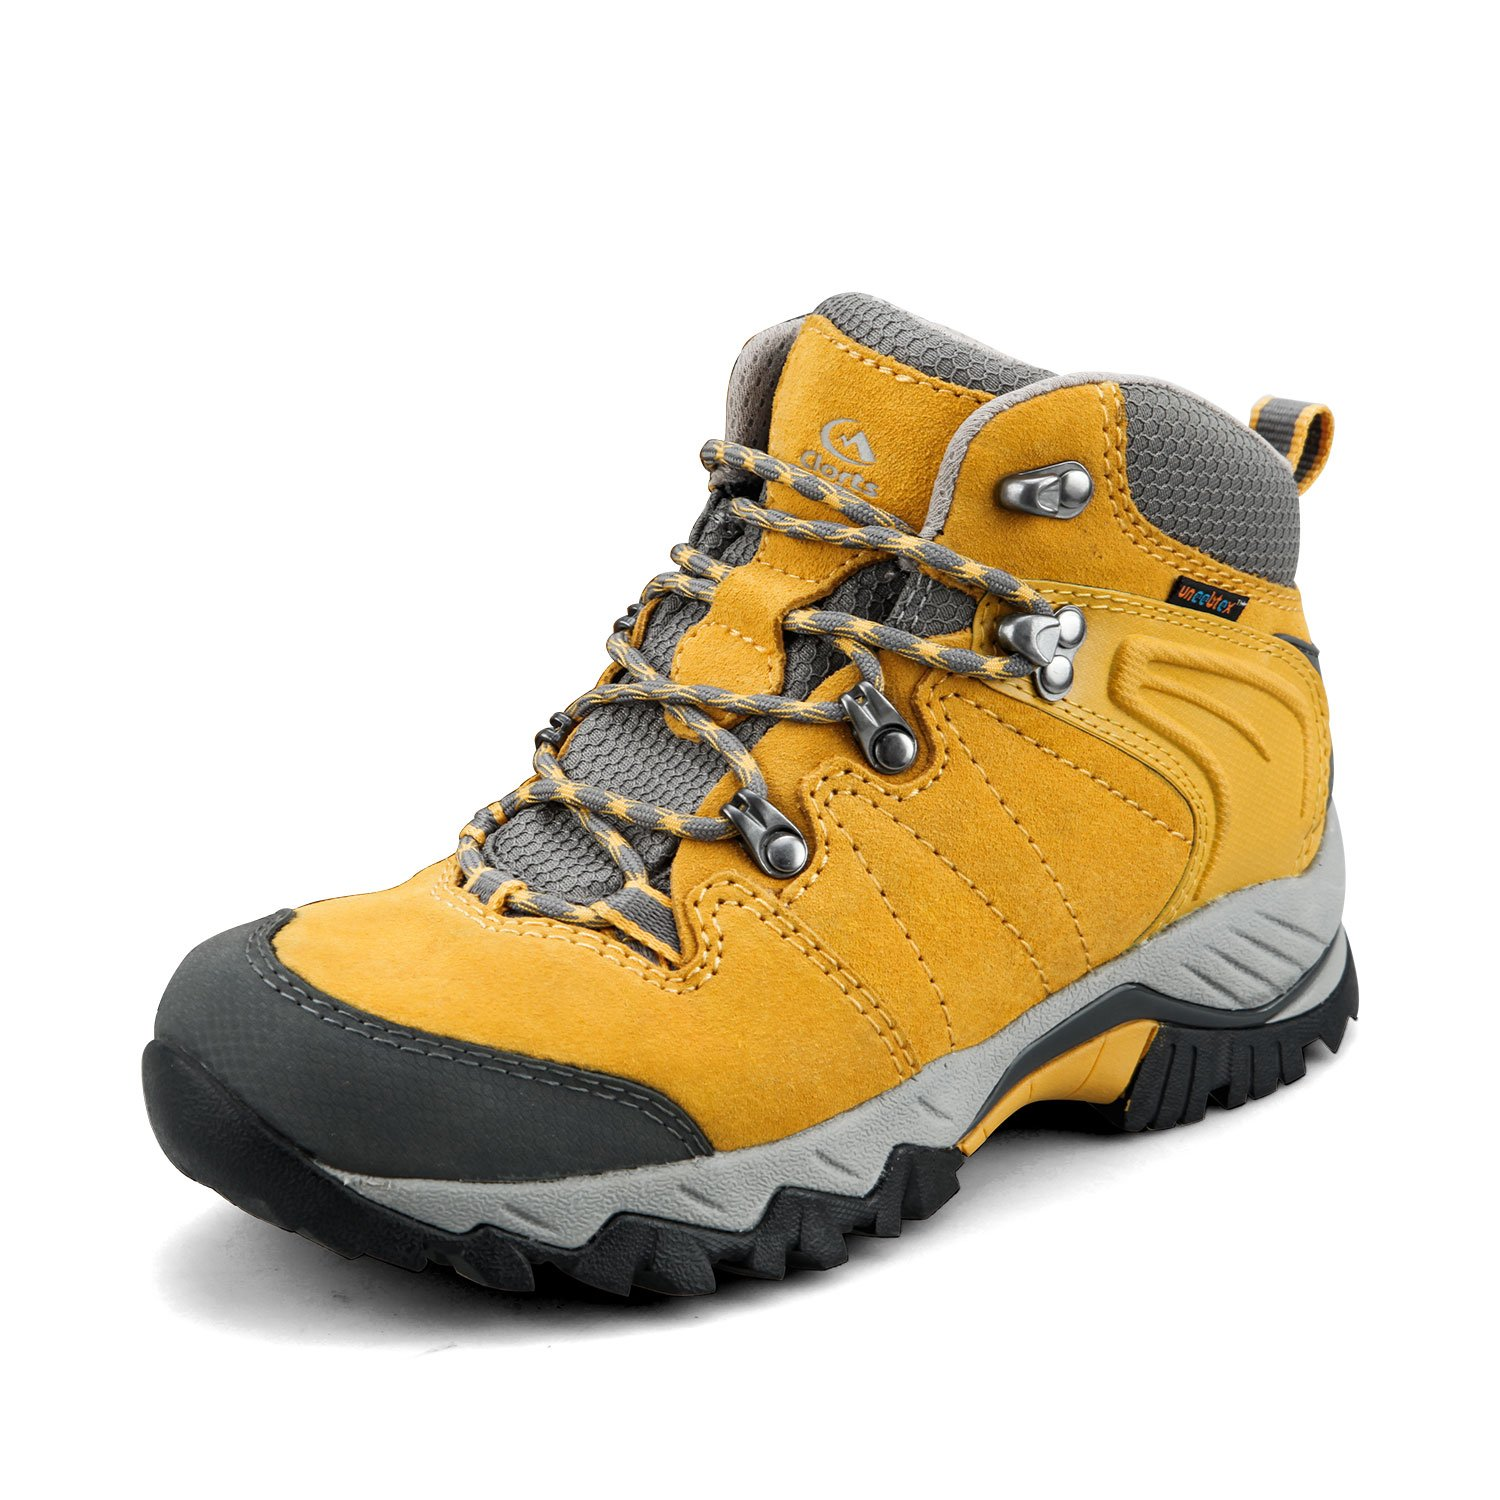 Clorts Women's Hiker Leather Waterproof Hiking Boot Outdoor Backpacking Shoe Yellow HKM-822F US8.5 by Clorts